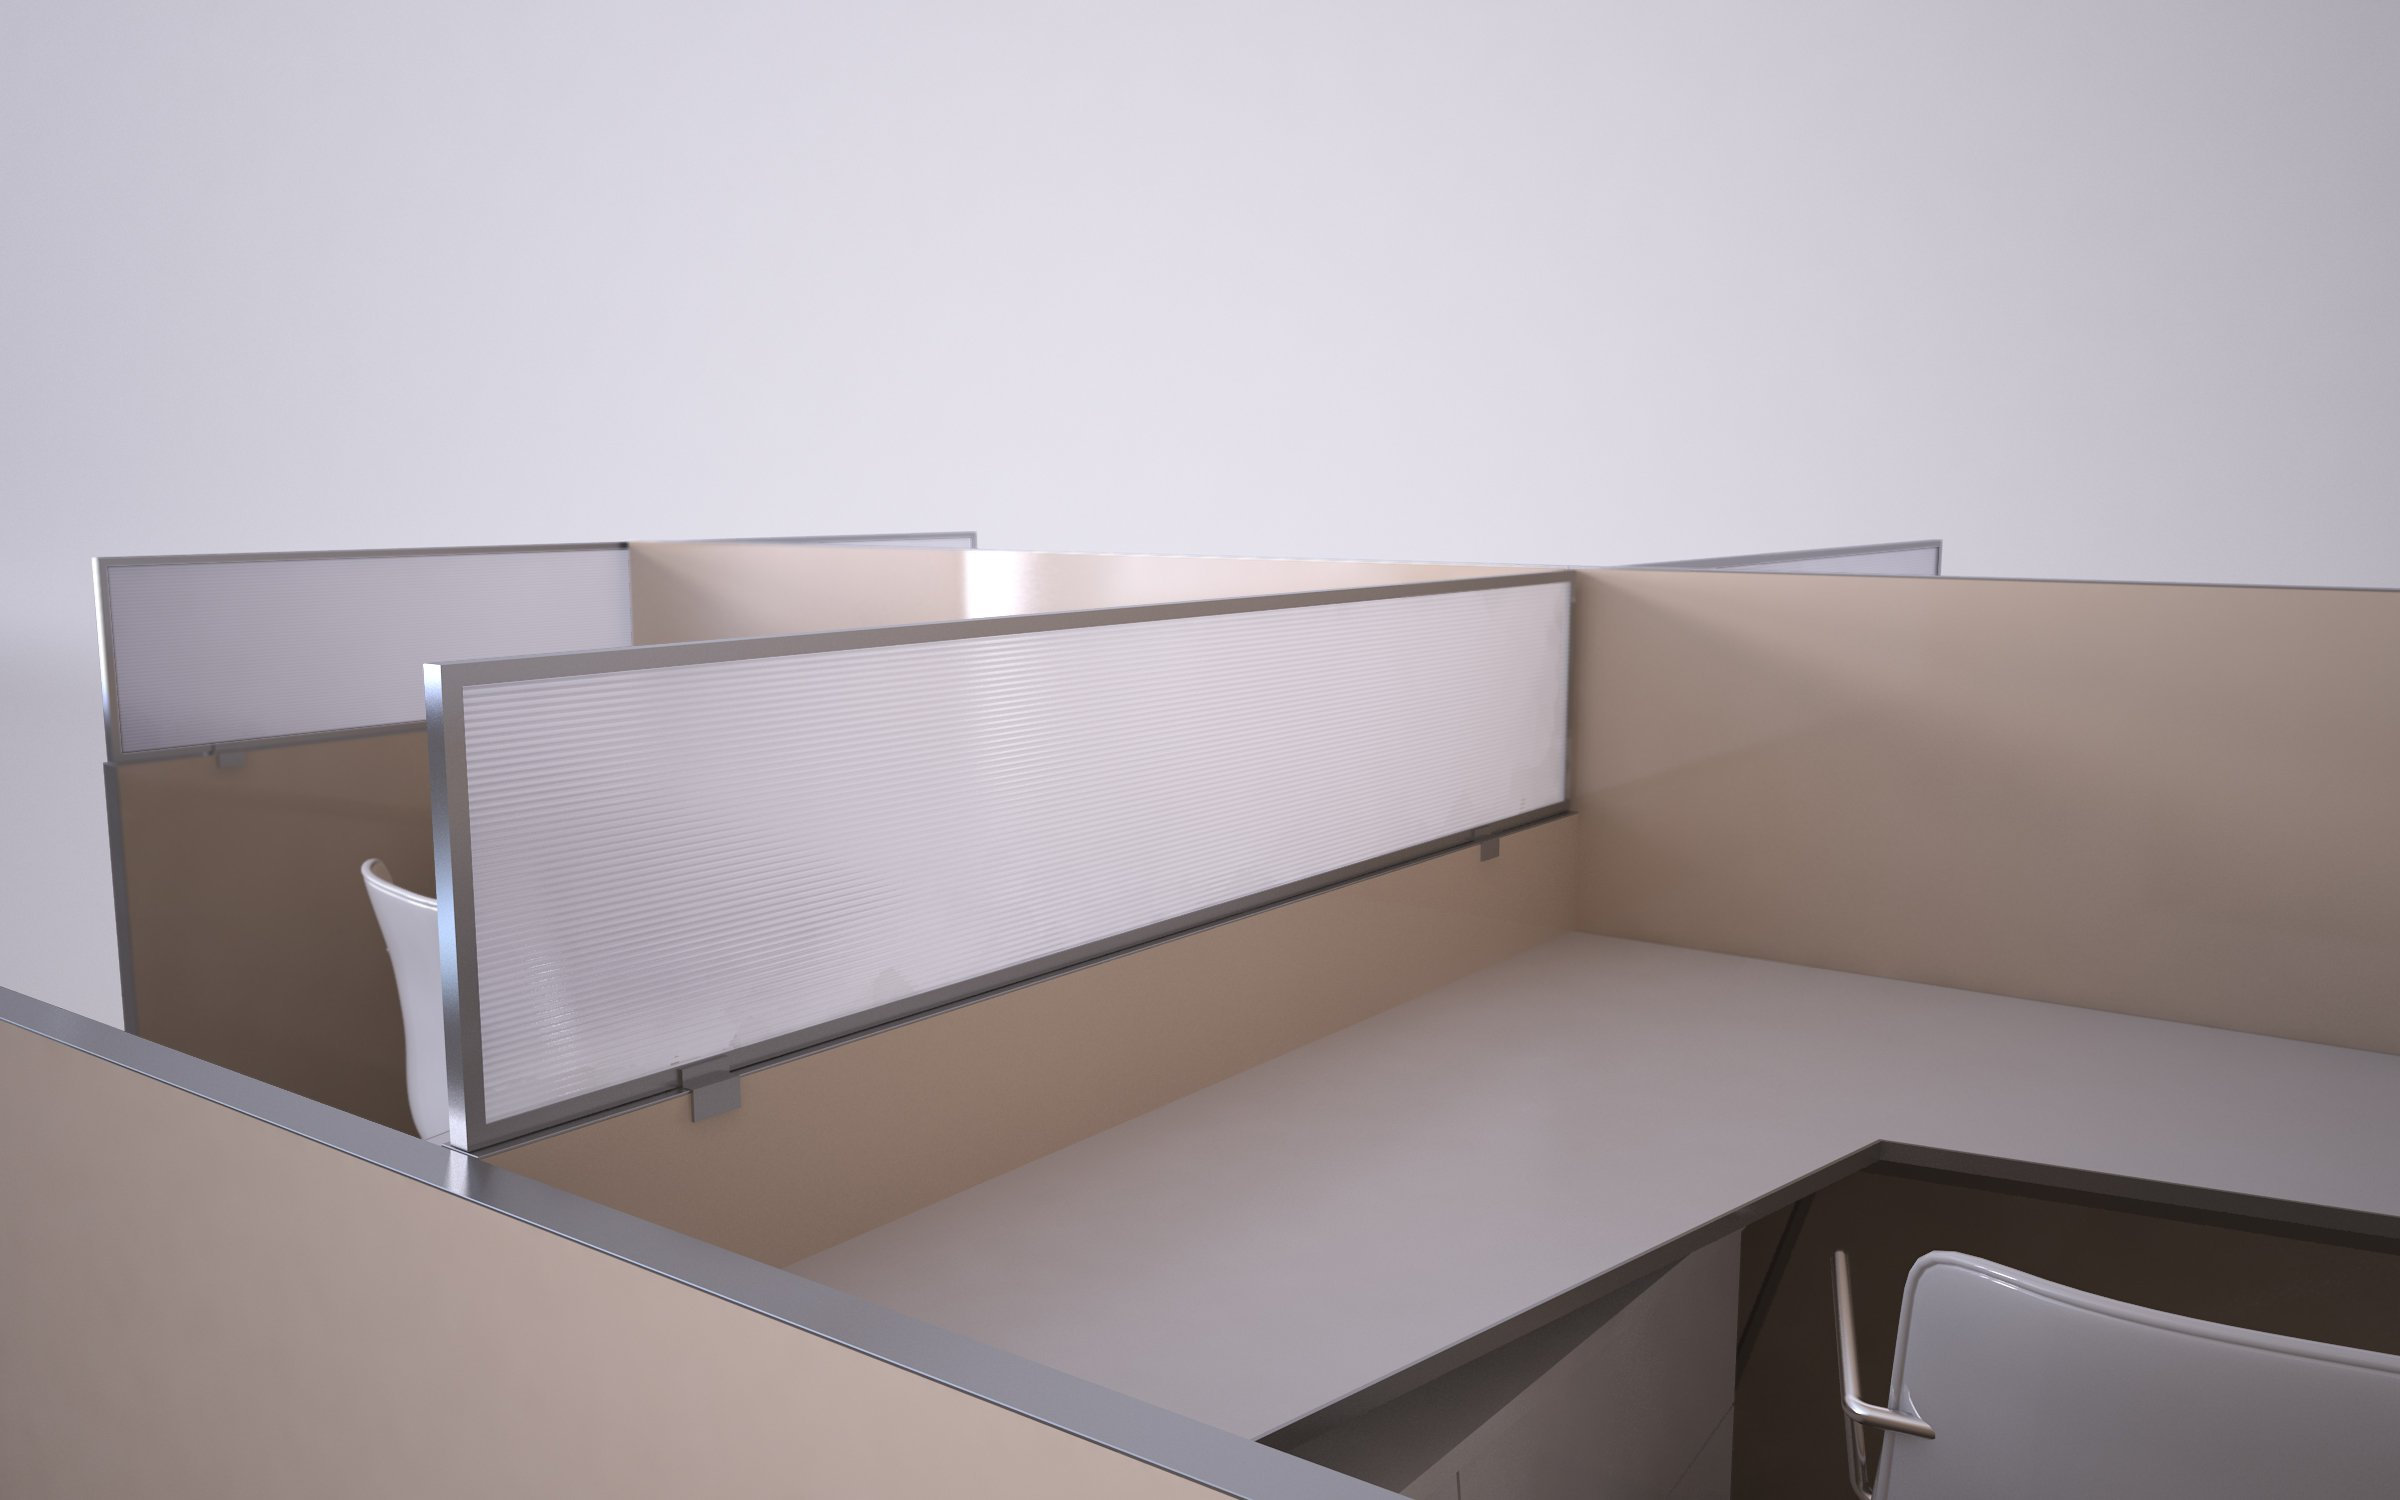 12'' Polycarbonate Cubicle Mounted Privacy Panel with Small Brackets, 12'' X 24'', White/Aluminum by OBEX